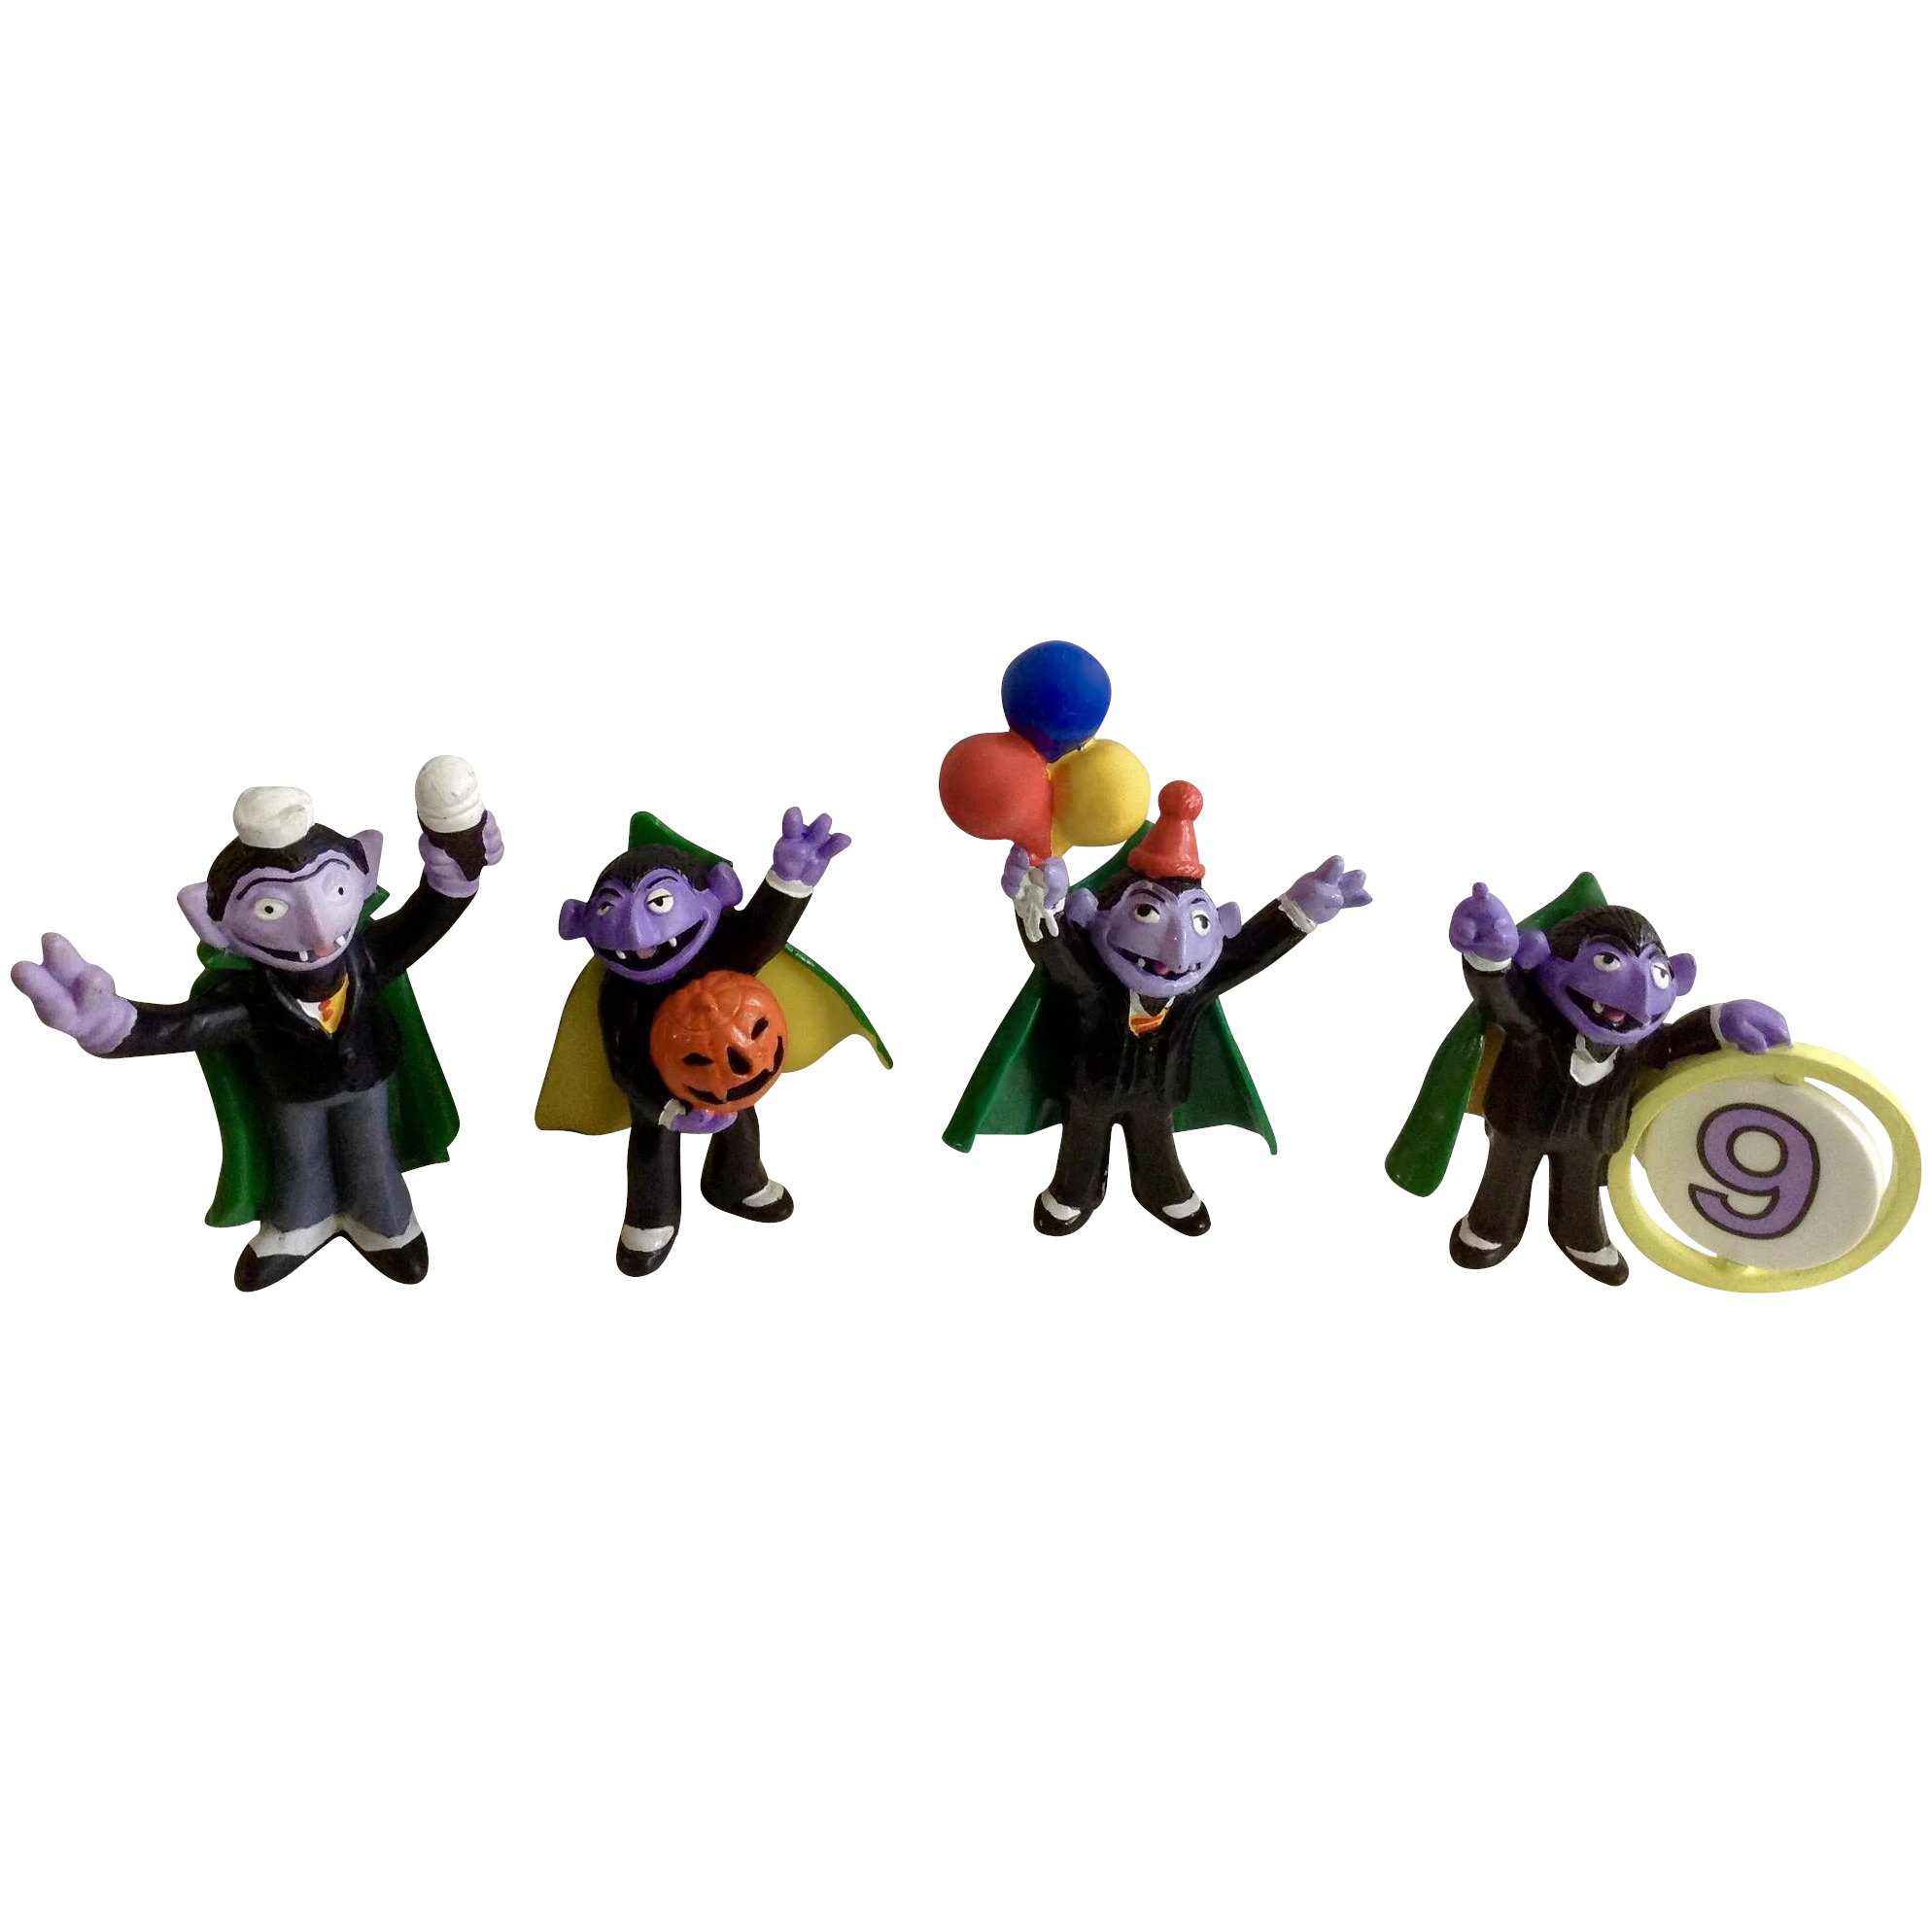 Halloween 1980 S Count Von Count Dracula Sesame Street Figurines Muppets Inc Applause Tm Ctw Tara Toy Corp Plastic Cake Topper Collection